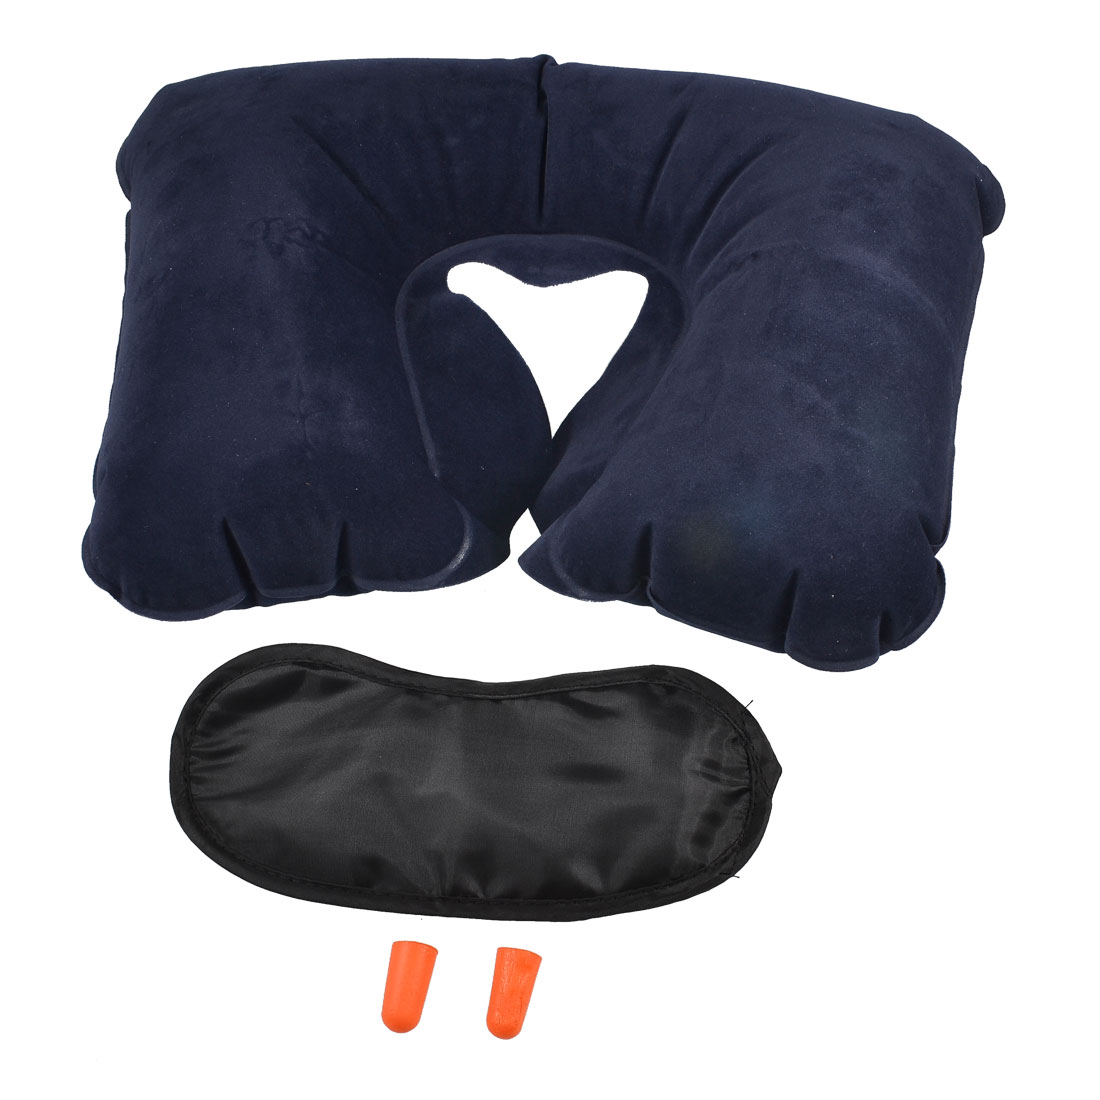 Travel Traveling Pack Neck Air Pillow + Eye Shade + Earplugs